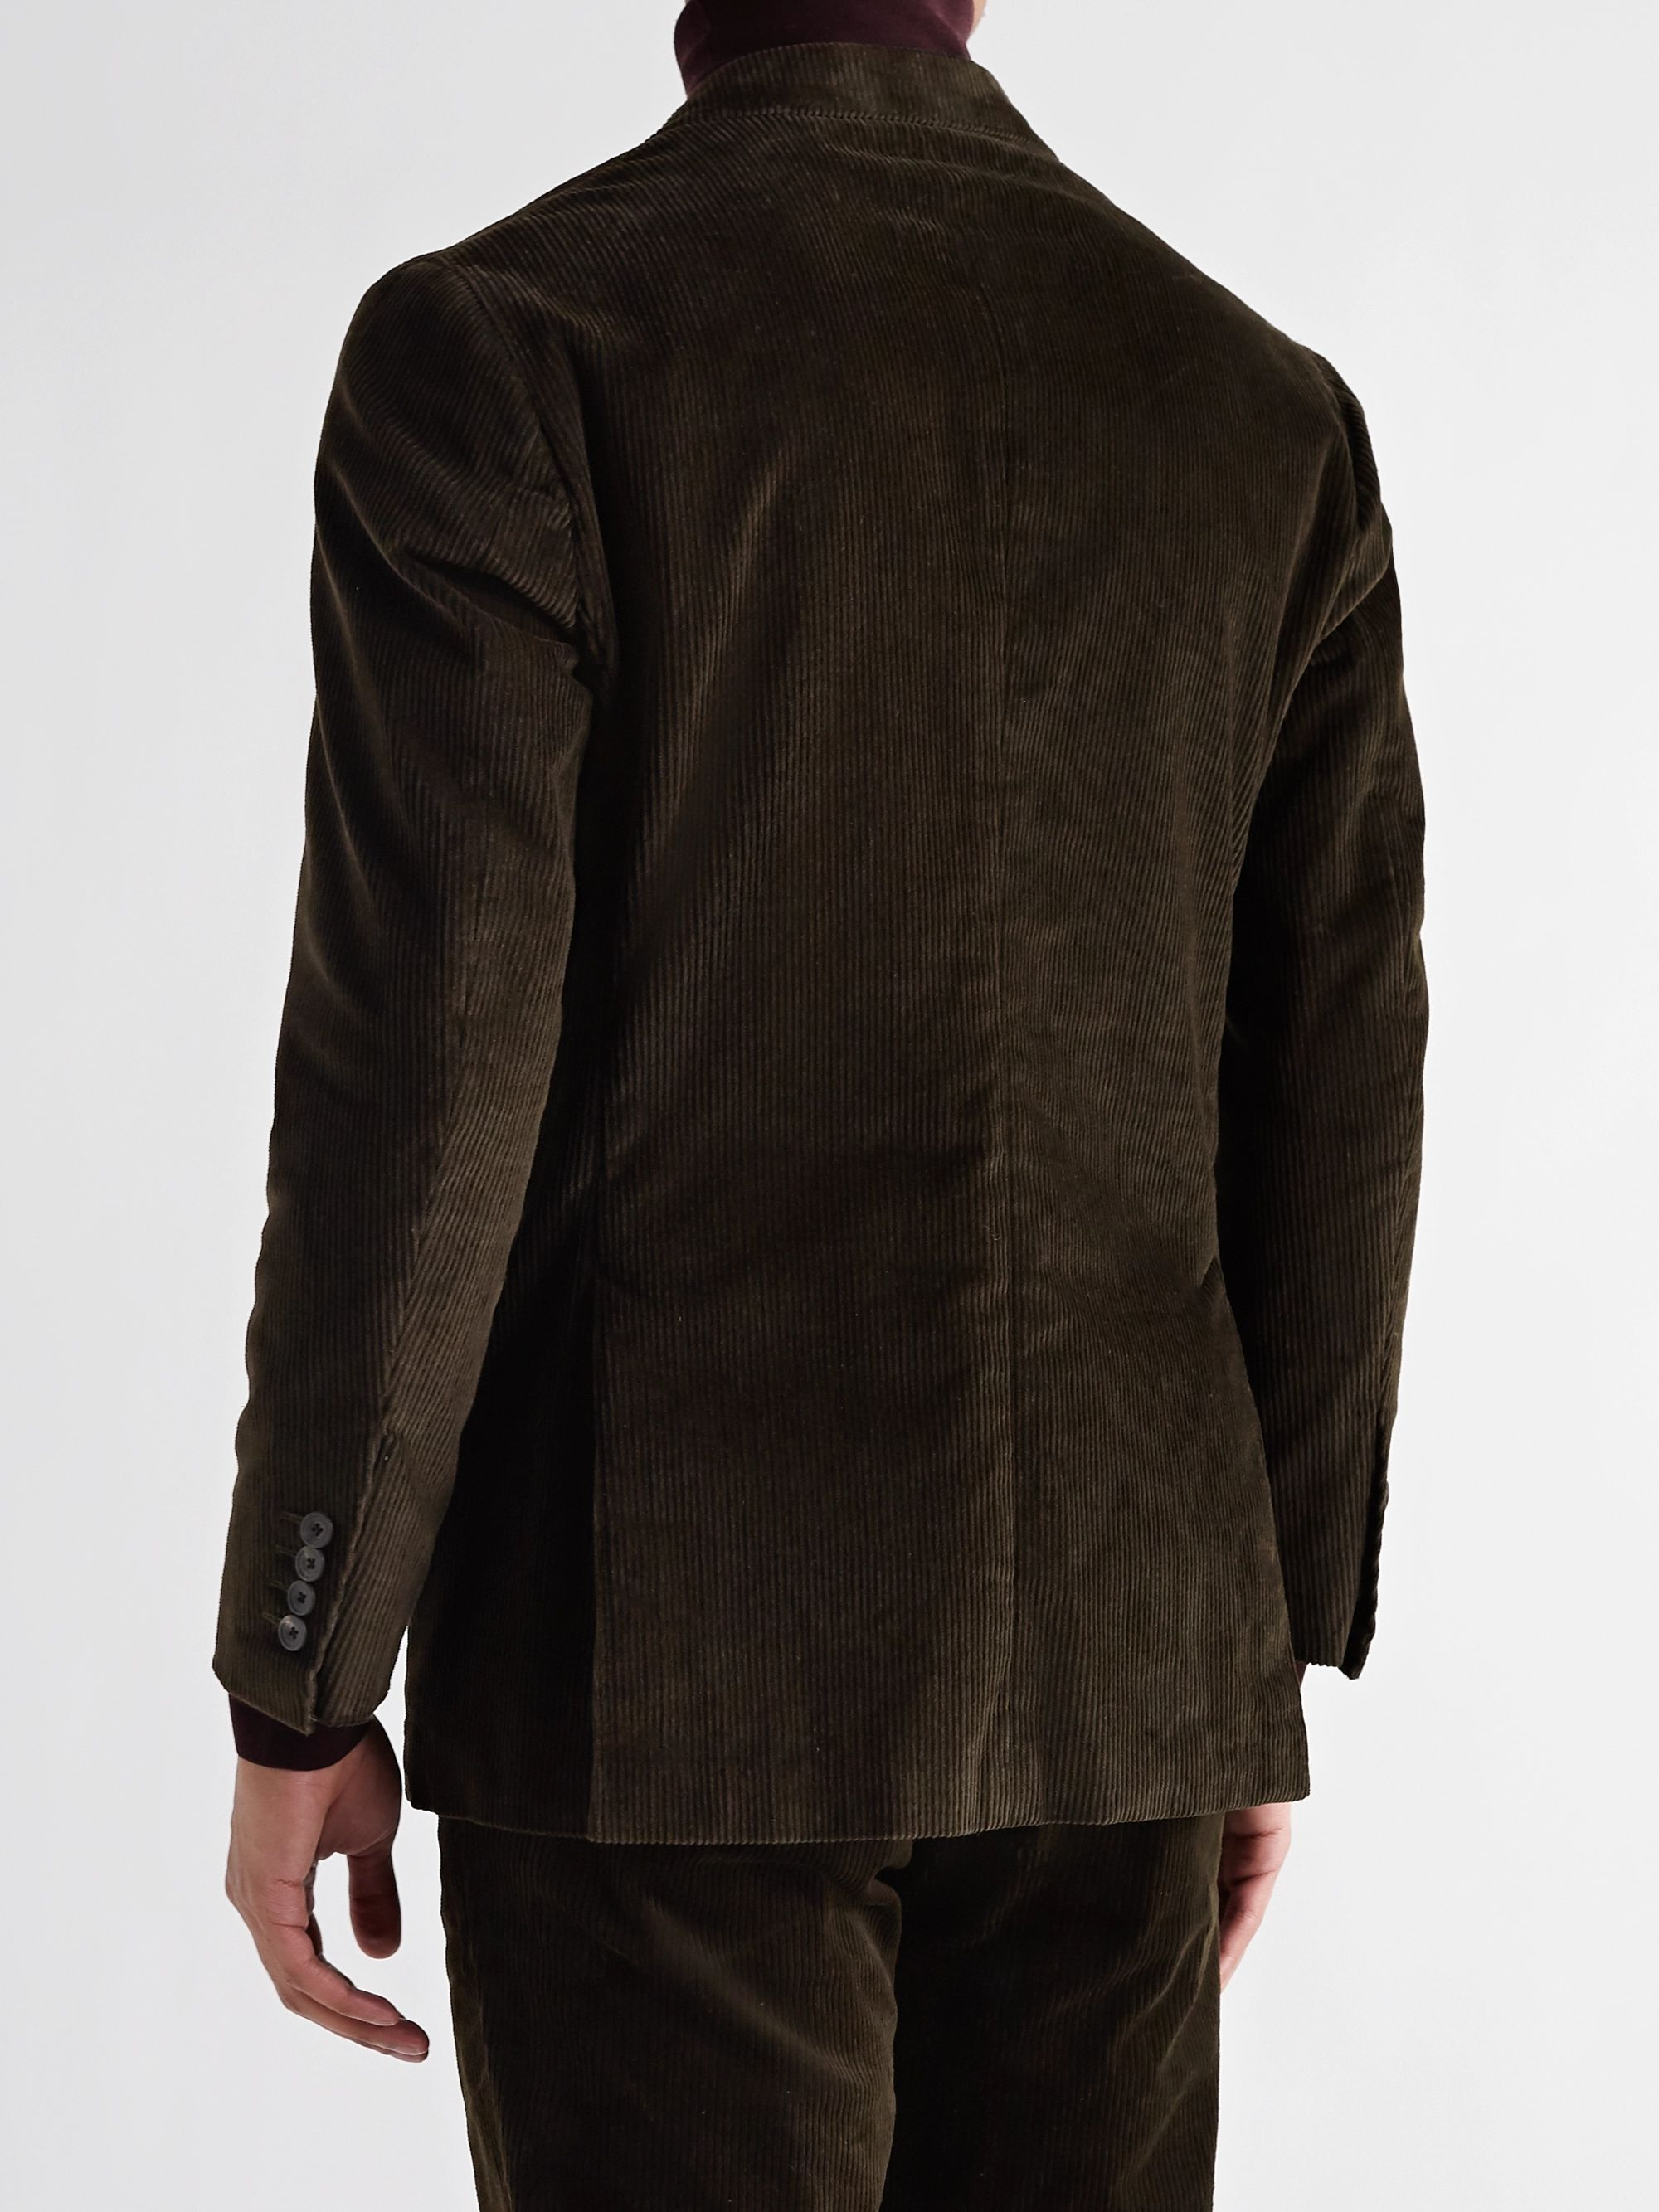 THOM SWEENEY Stretch-Cotton Corduroy Suit Jacket